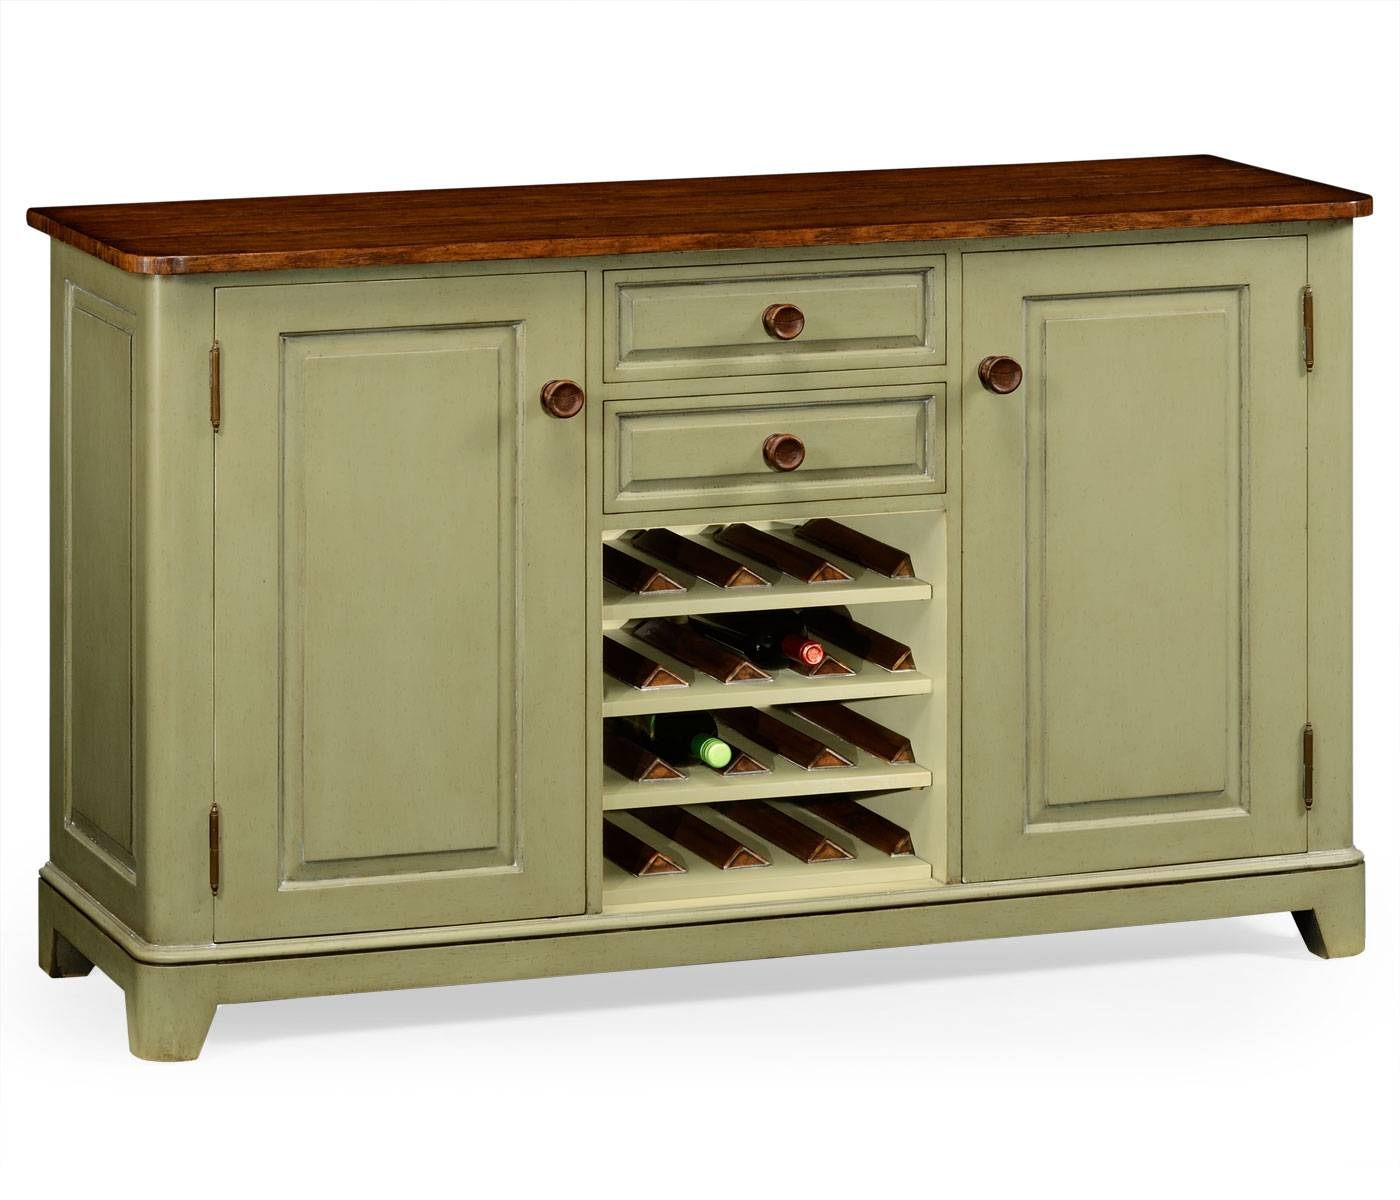 Things To Know About Sideboard With Wine Racks – Bonnie Is Good In Sideboards With Wine Racks (#18 of 20)